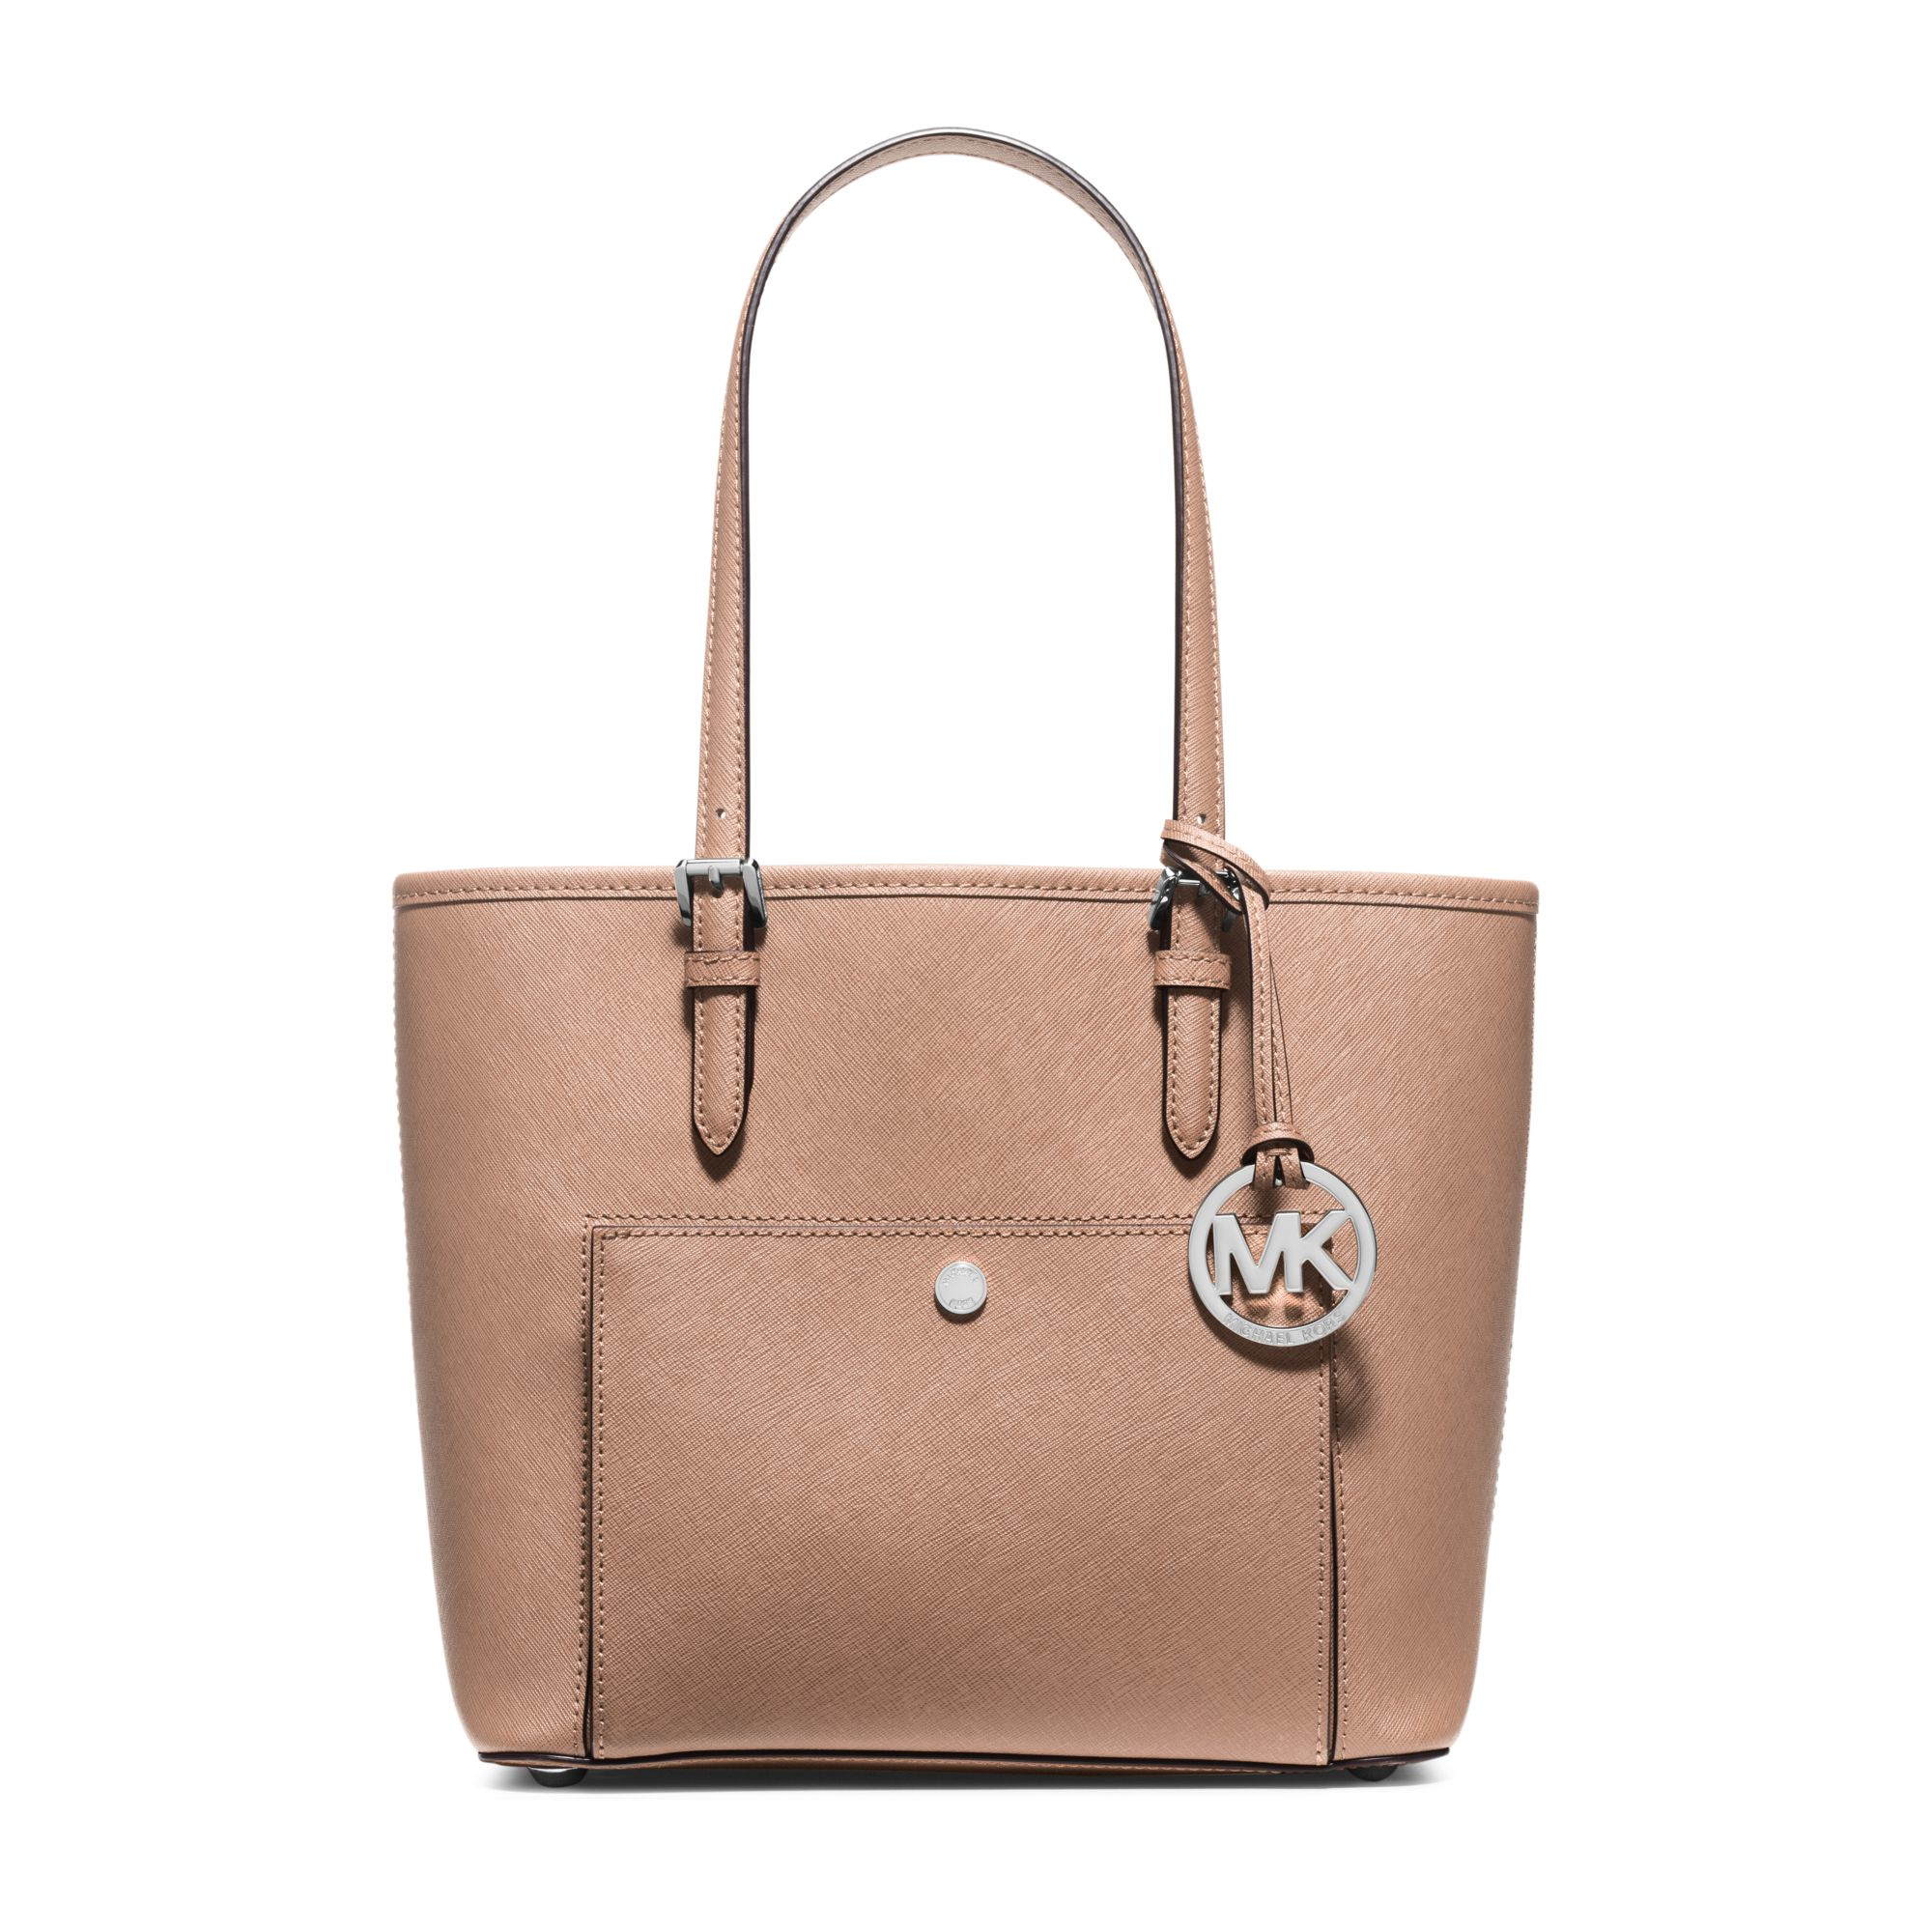 michael kors jet set medium saffiano leather tote in pink lyst. Black Bedroom Furniture Sets. Home Design Ideas